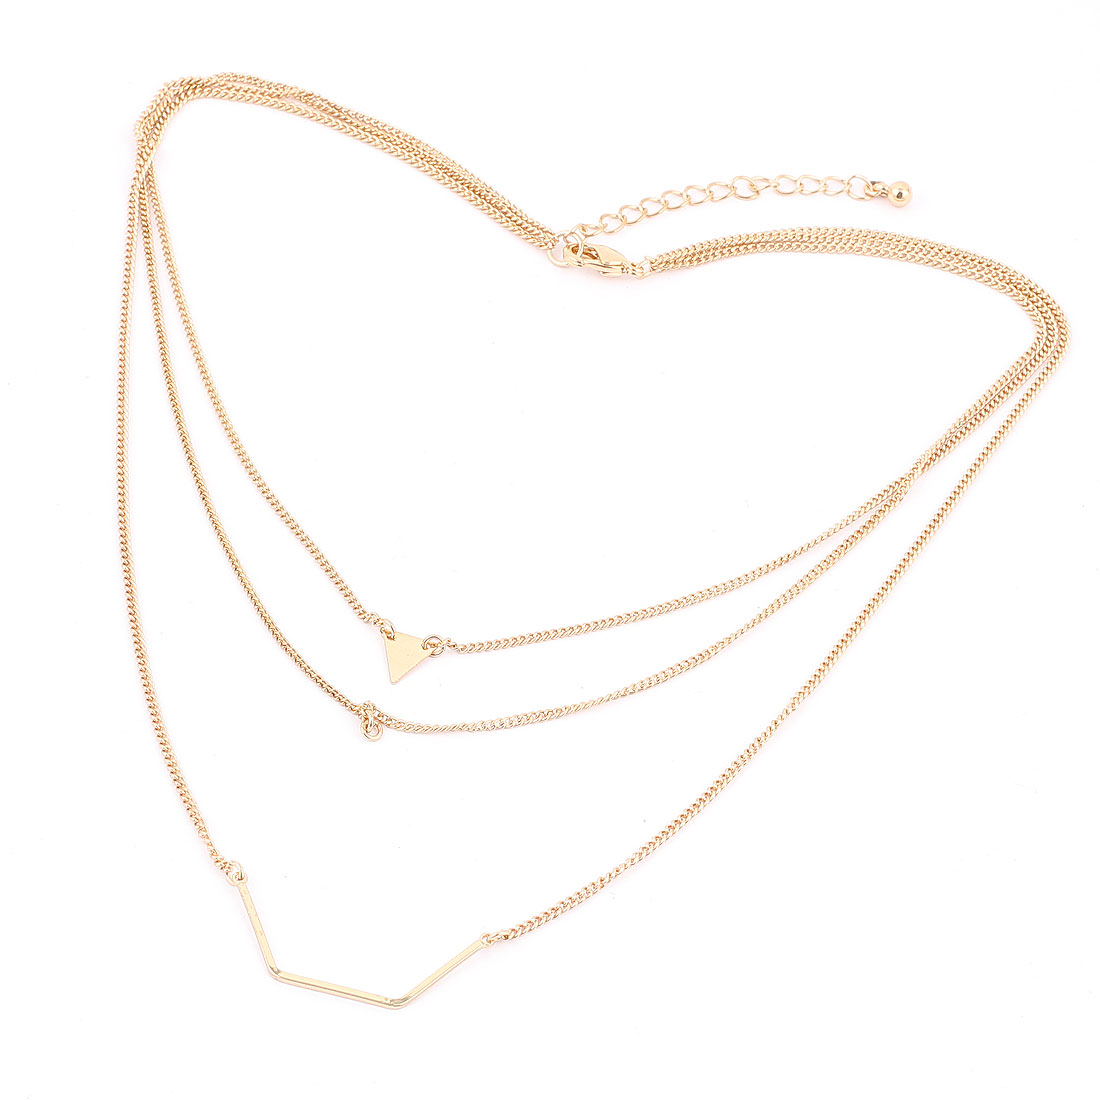 Gold Tone Metal Lightweight Lobster Buckle Strip Link Three Layers Slim Chain Necklace Neckwear Collar for Ladies Women